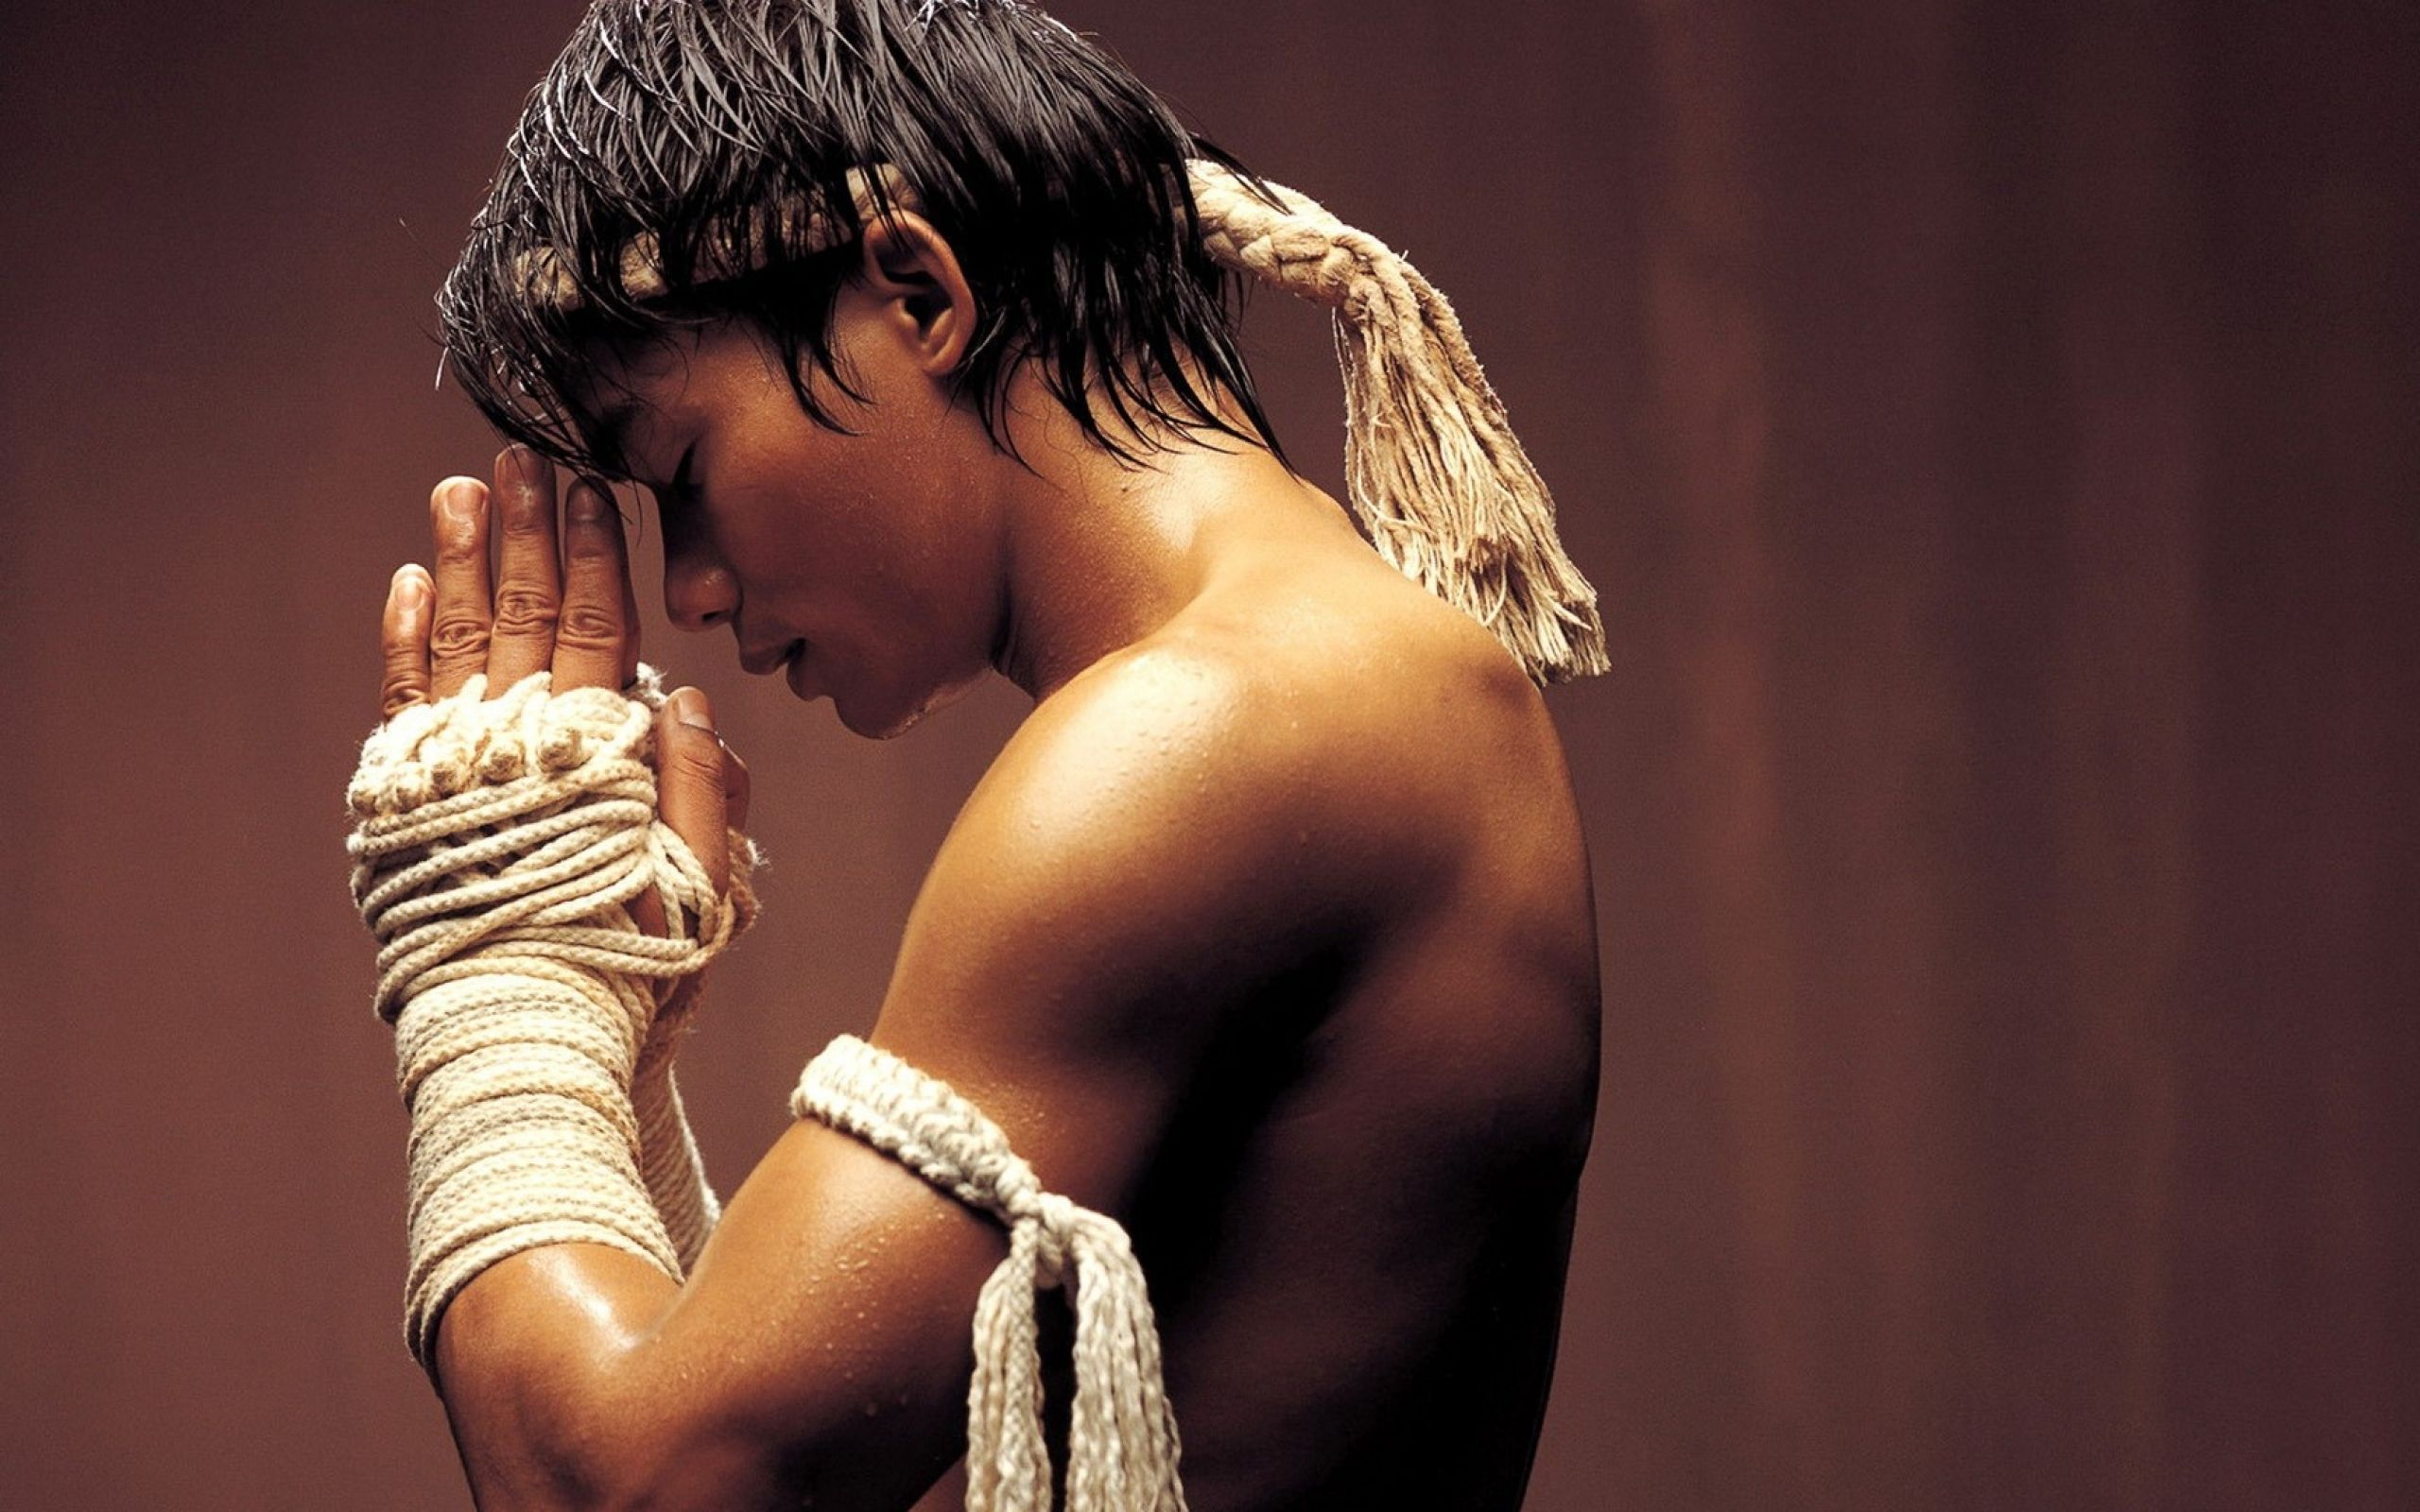 Tony Jaa Screensavers